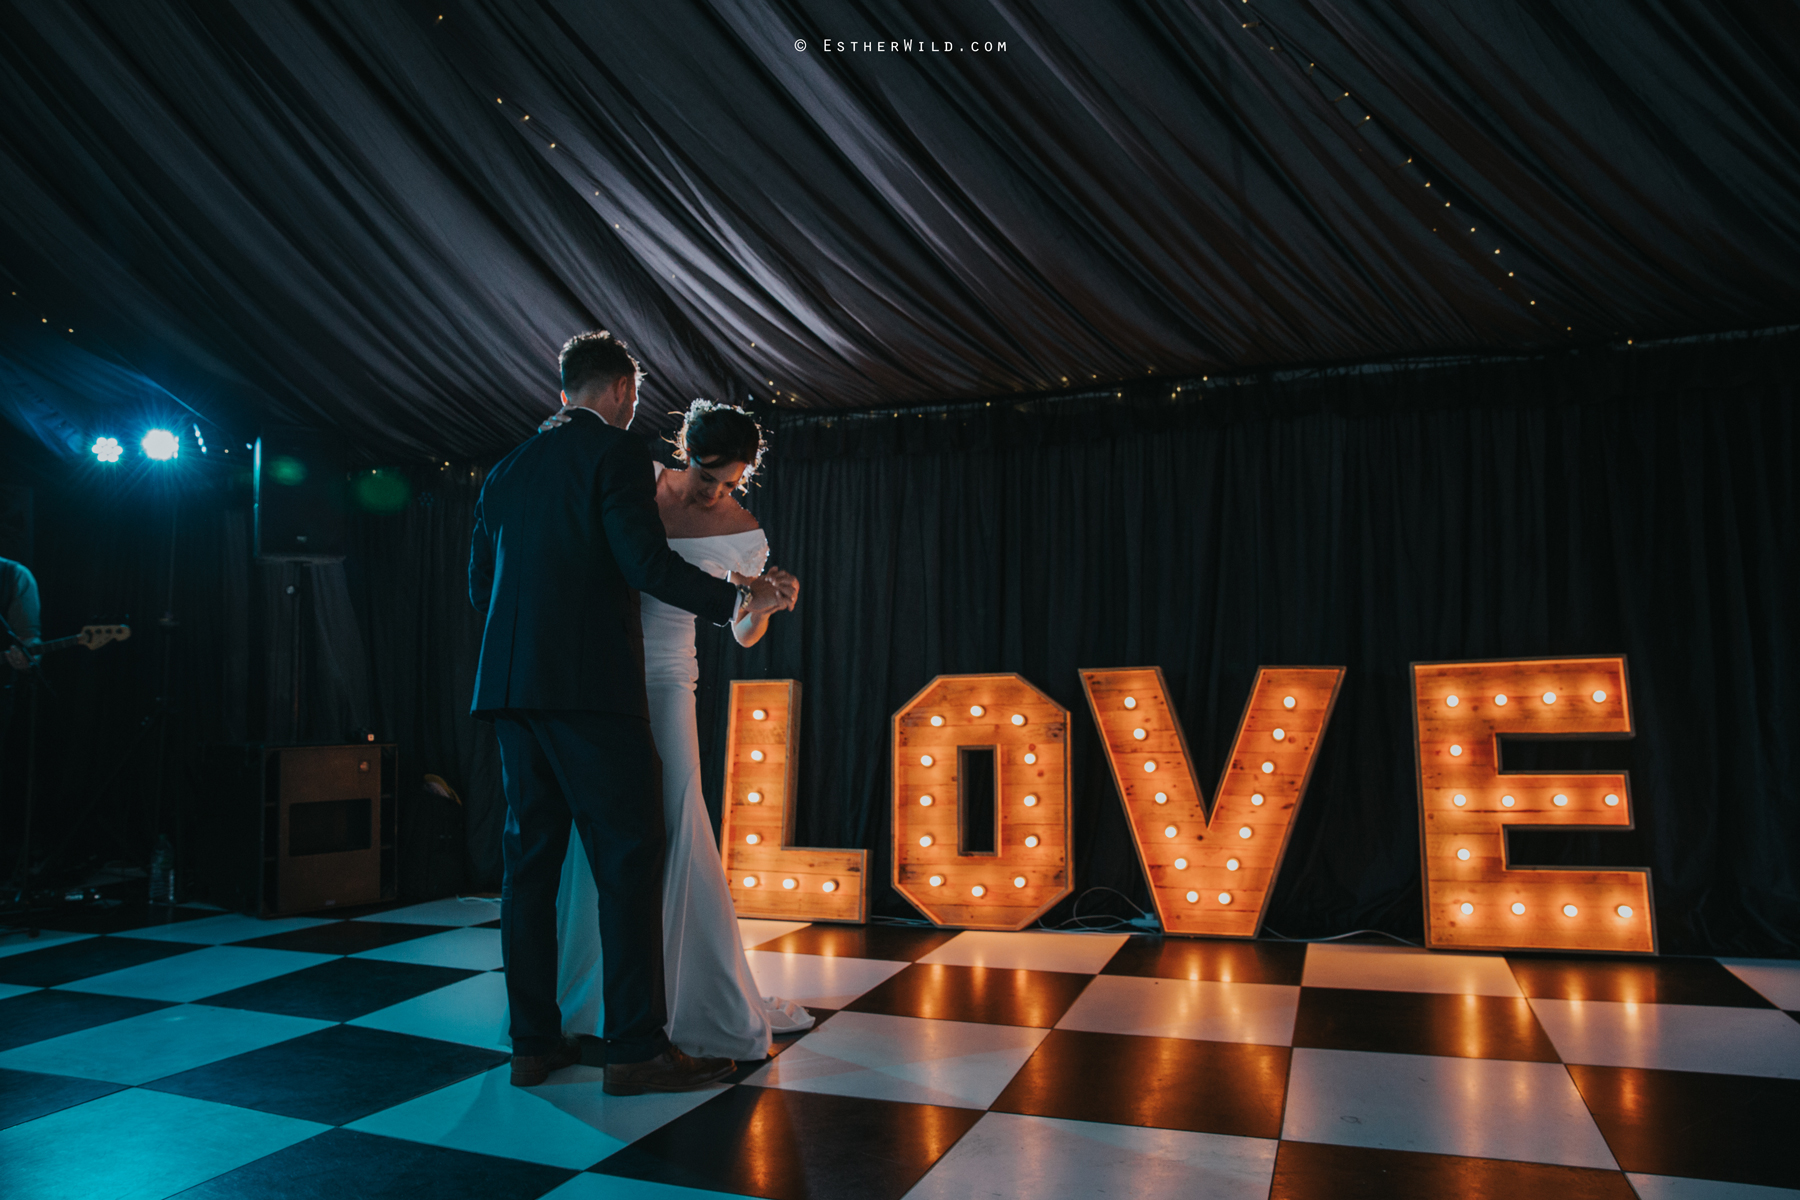 Wootton_Wedding_Copyright_Esther_Wild_Photographer_IMG_3208.jpg